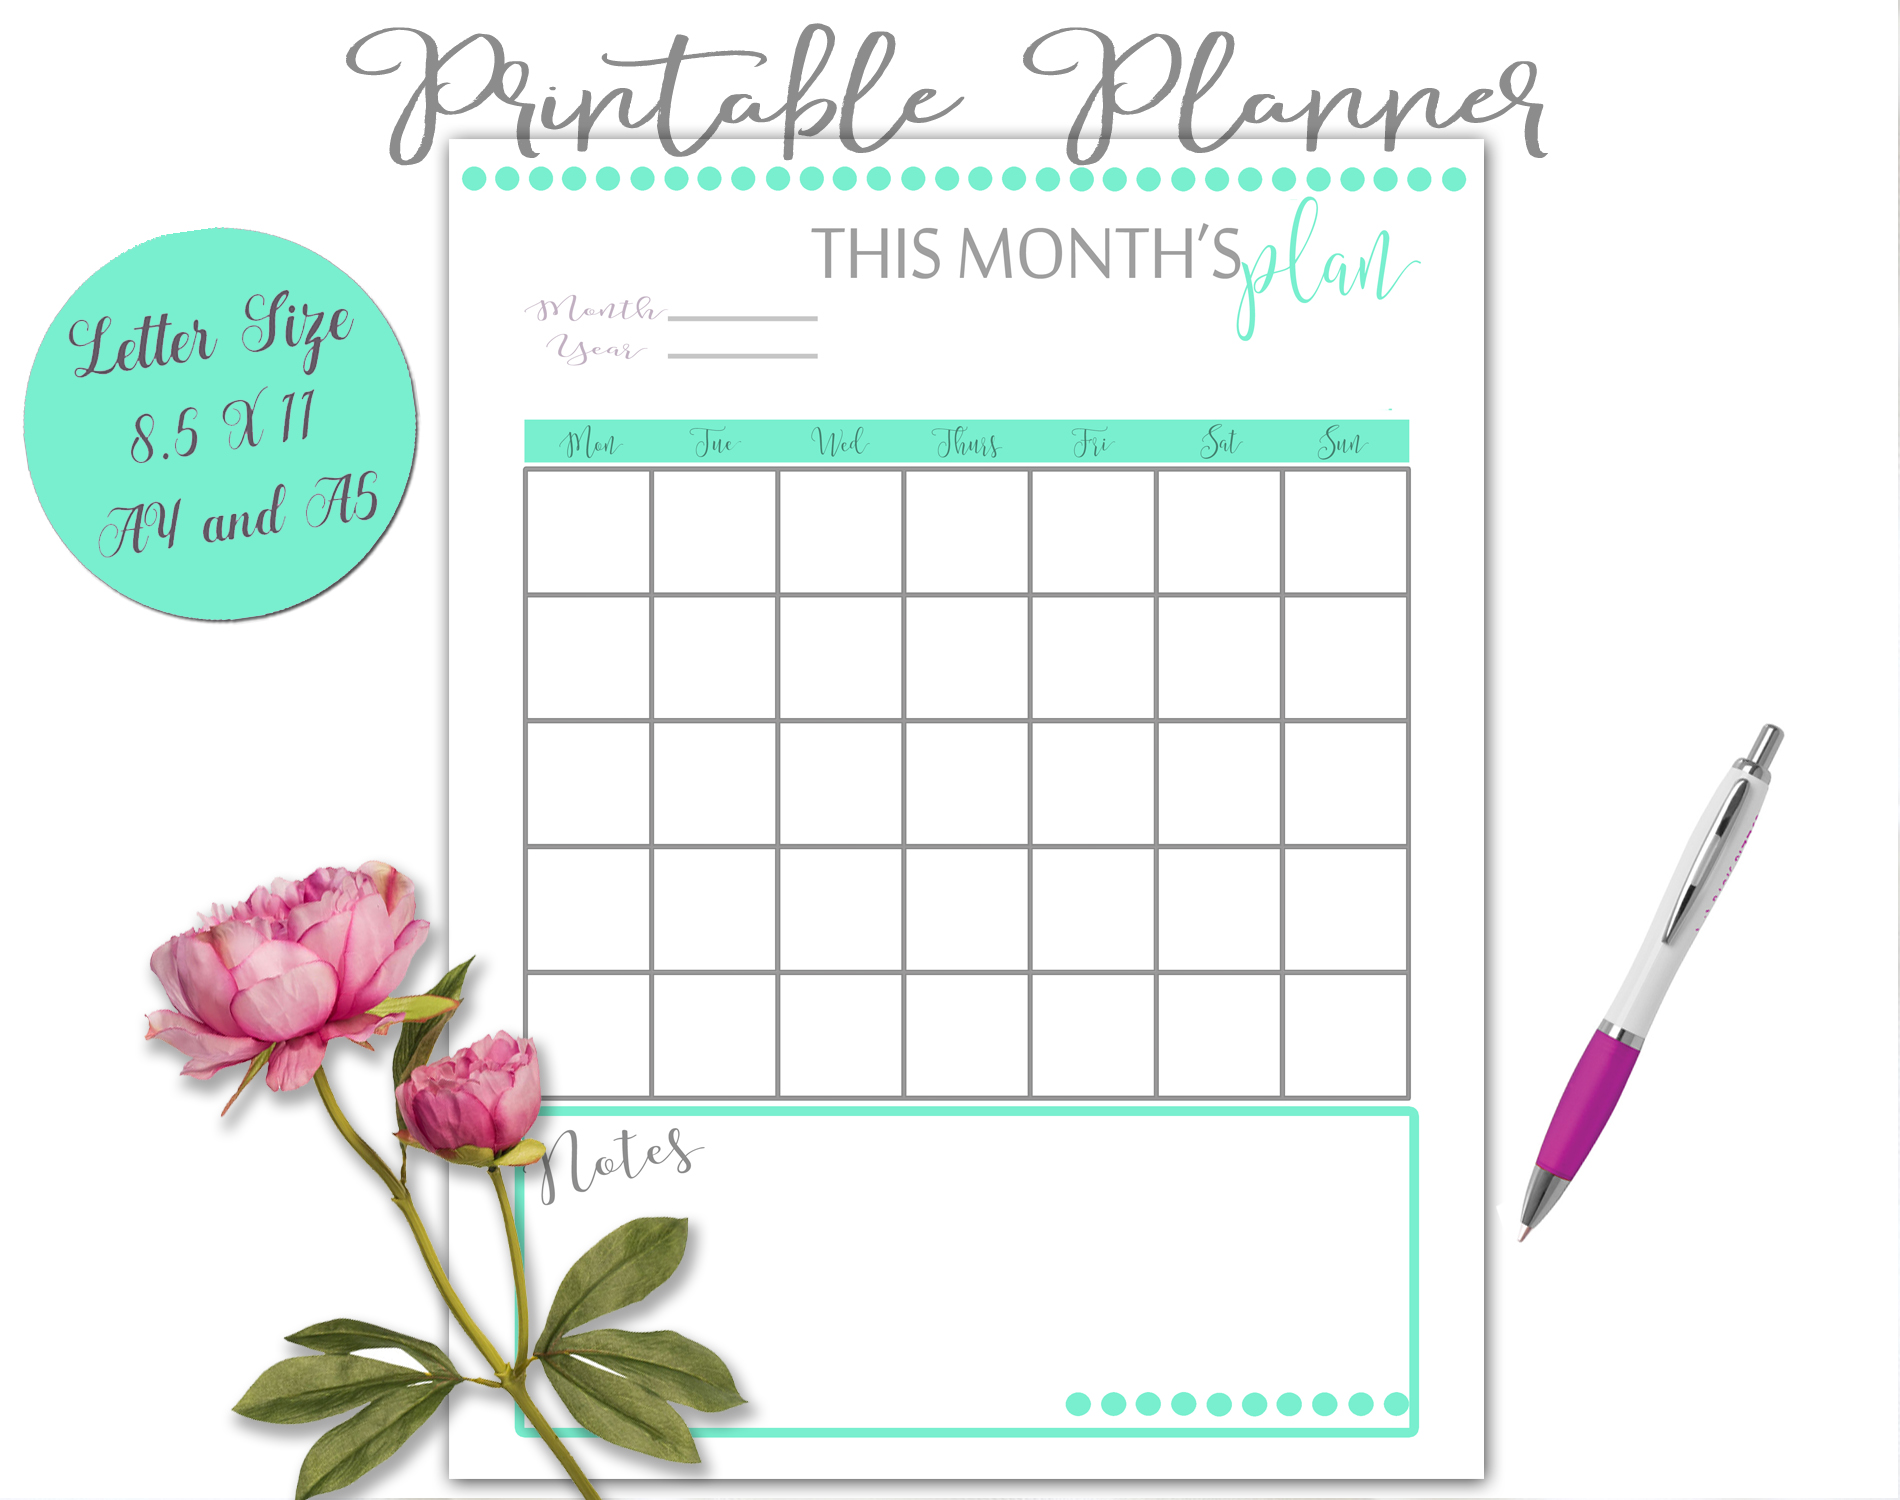 Printable Daily Weekly Monthly Planner Sheets example image 11